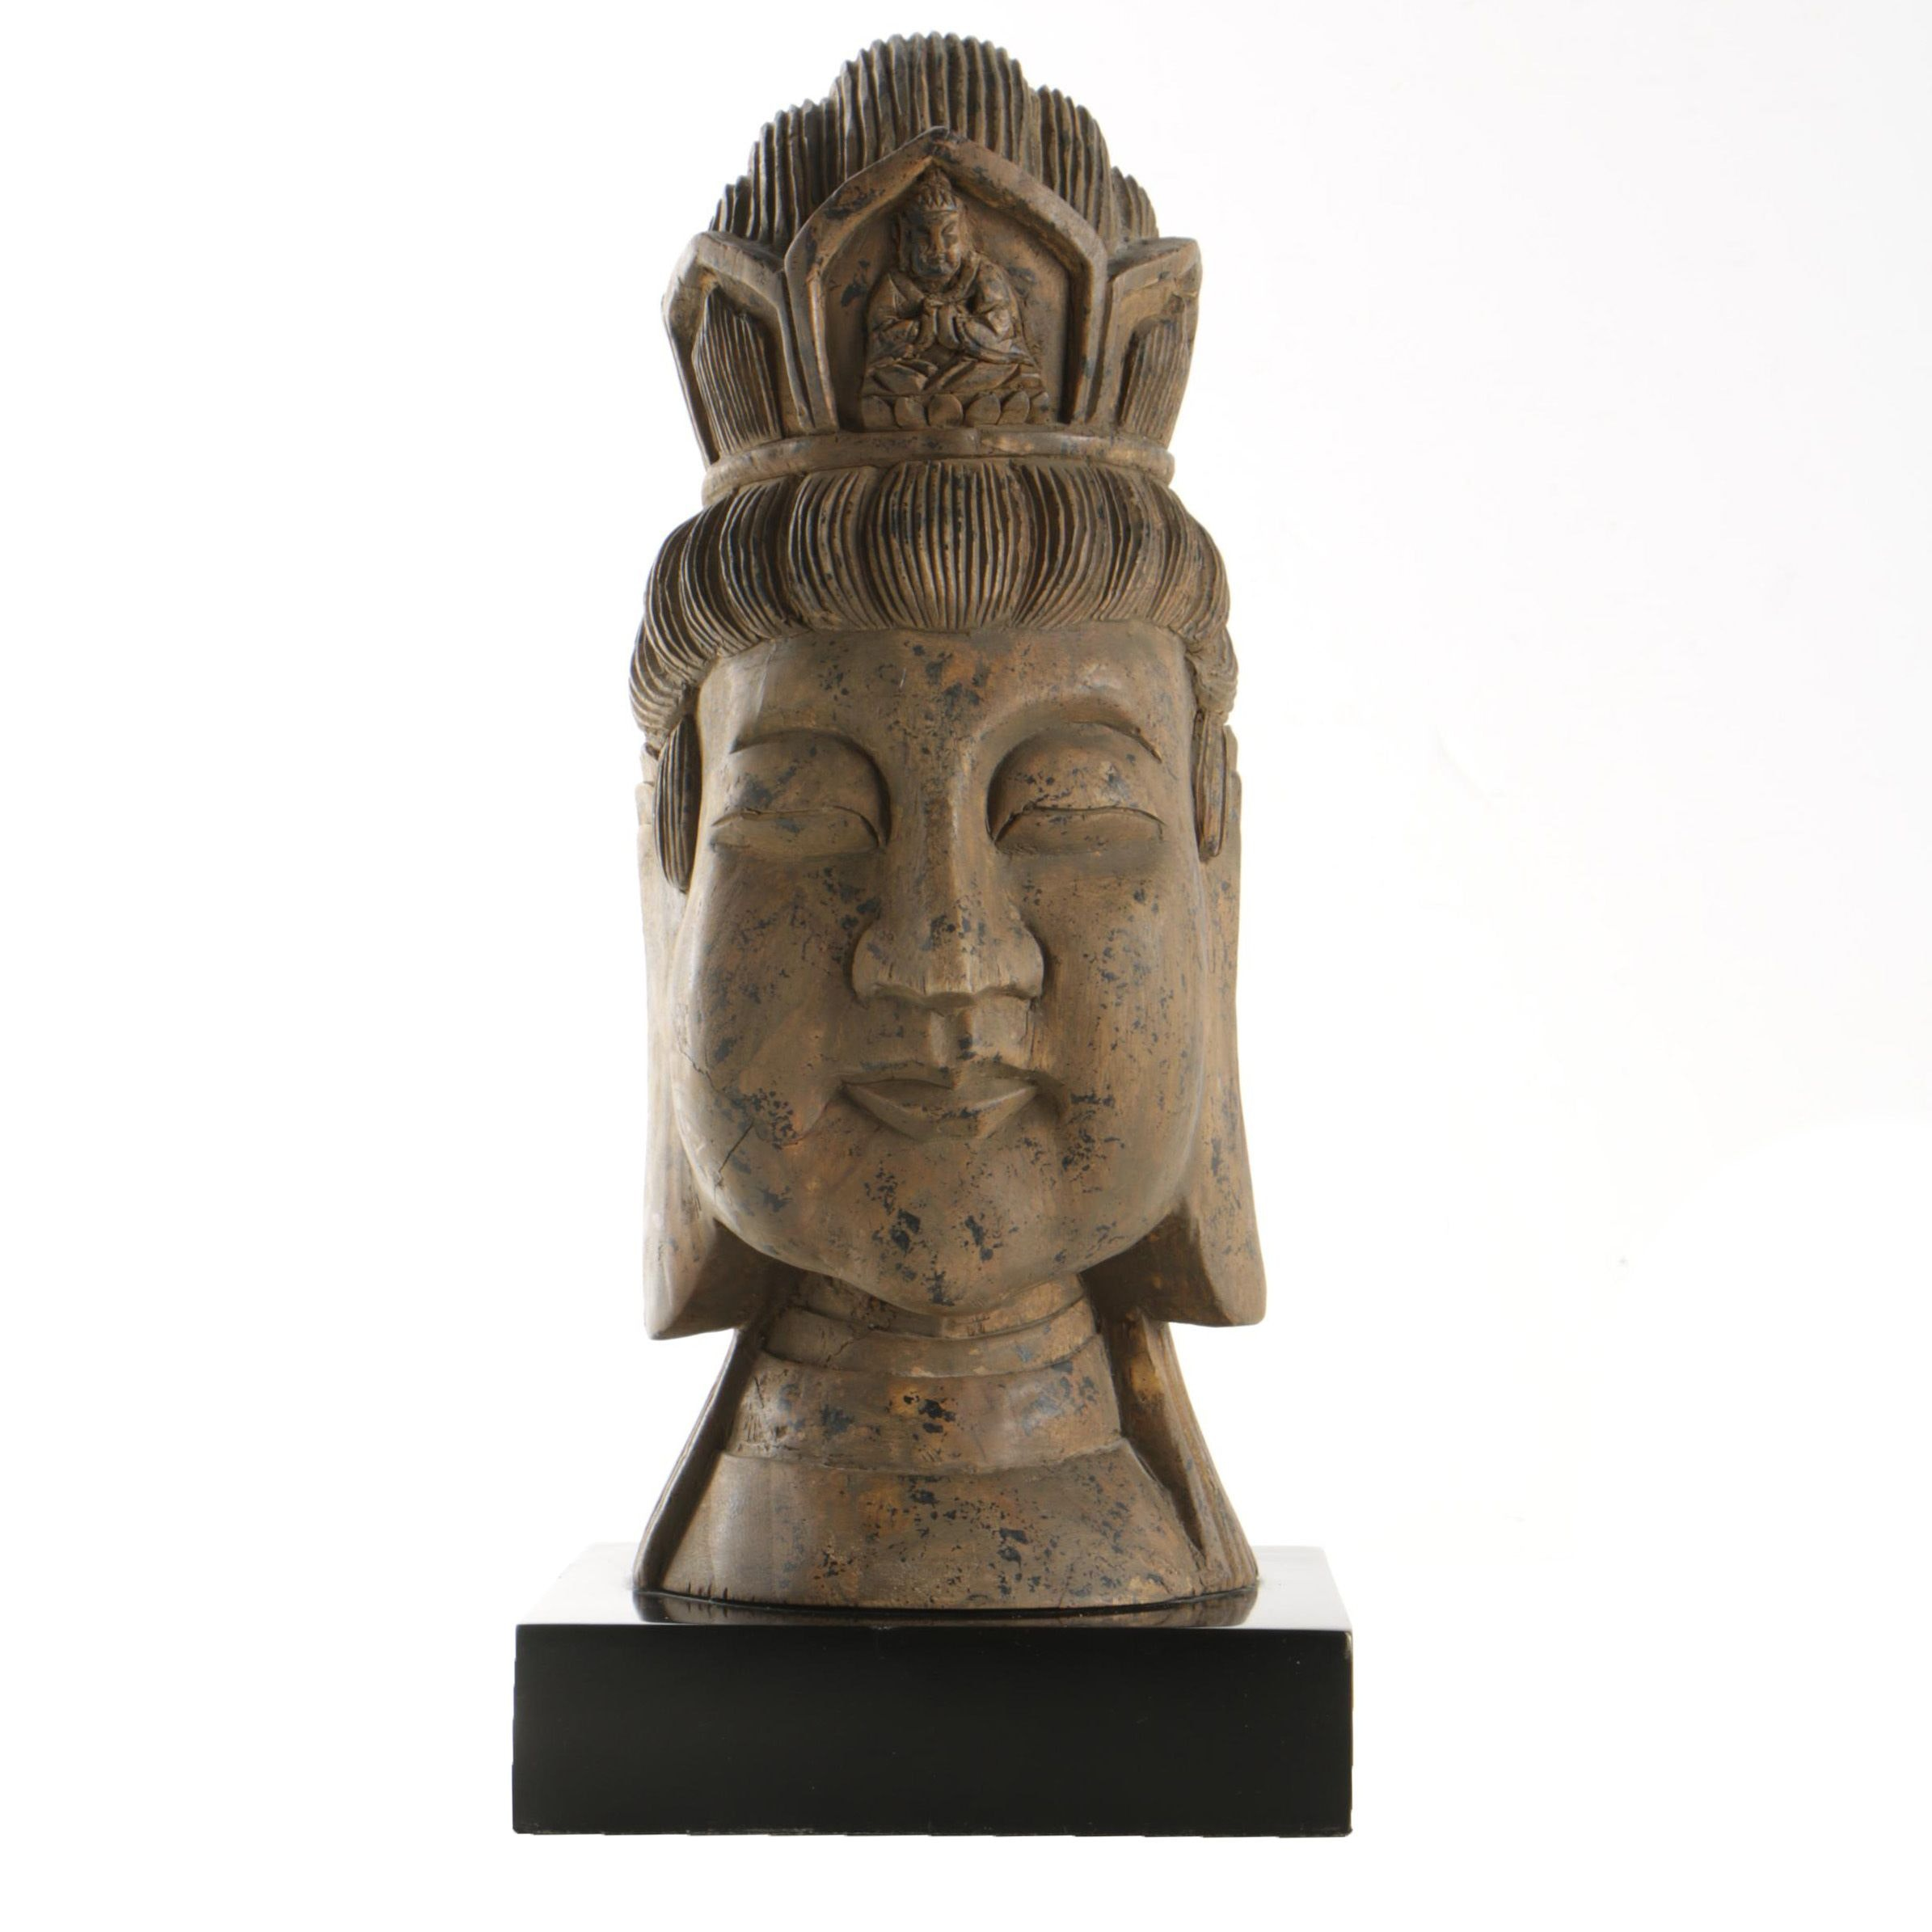 Carved Bust of the Buddha